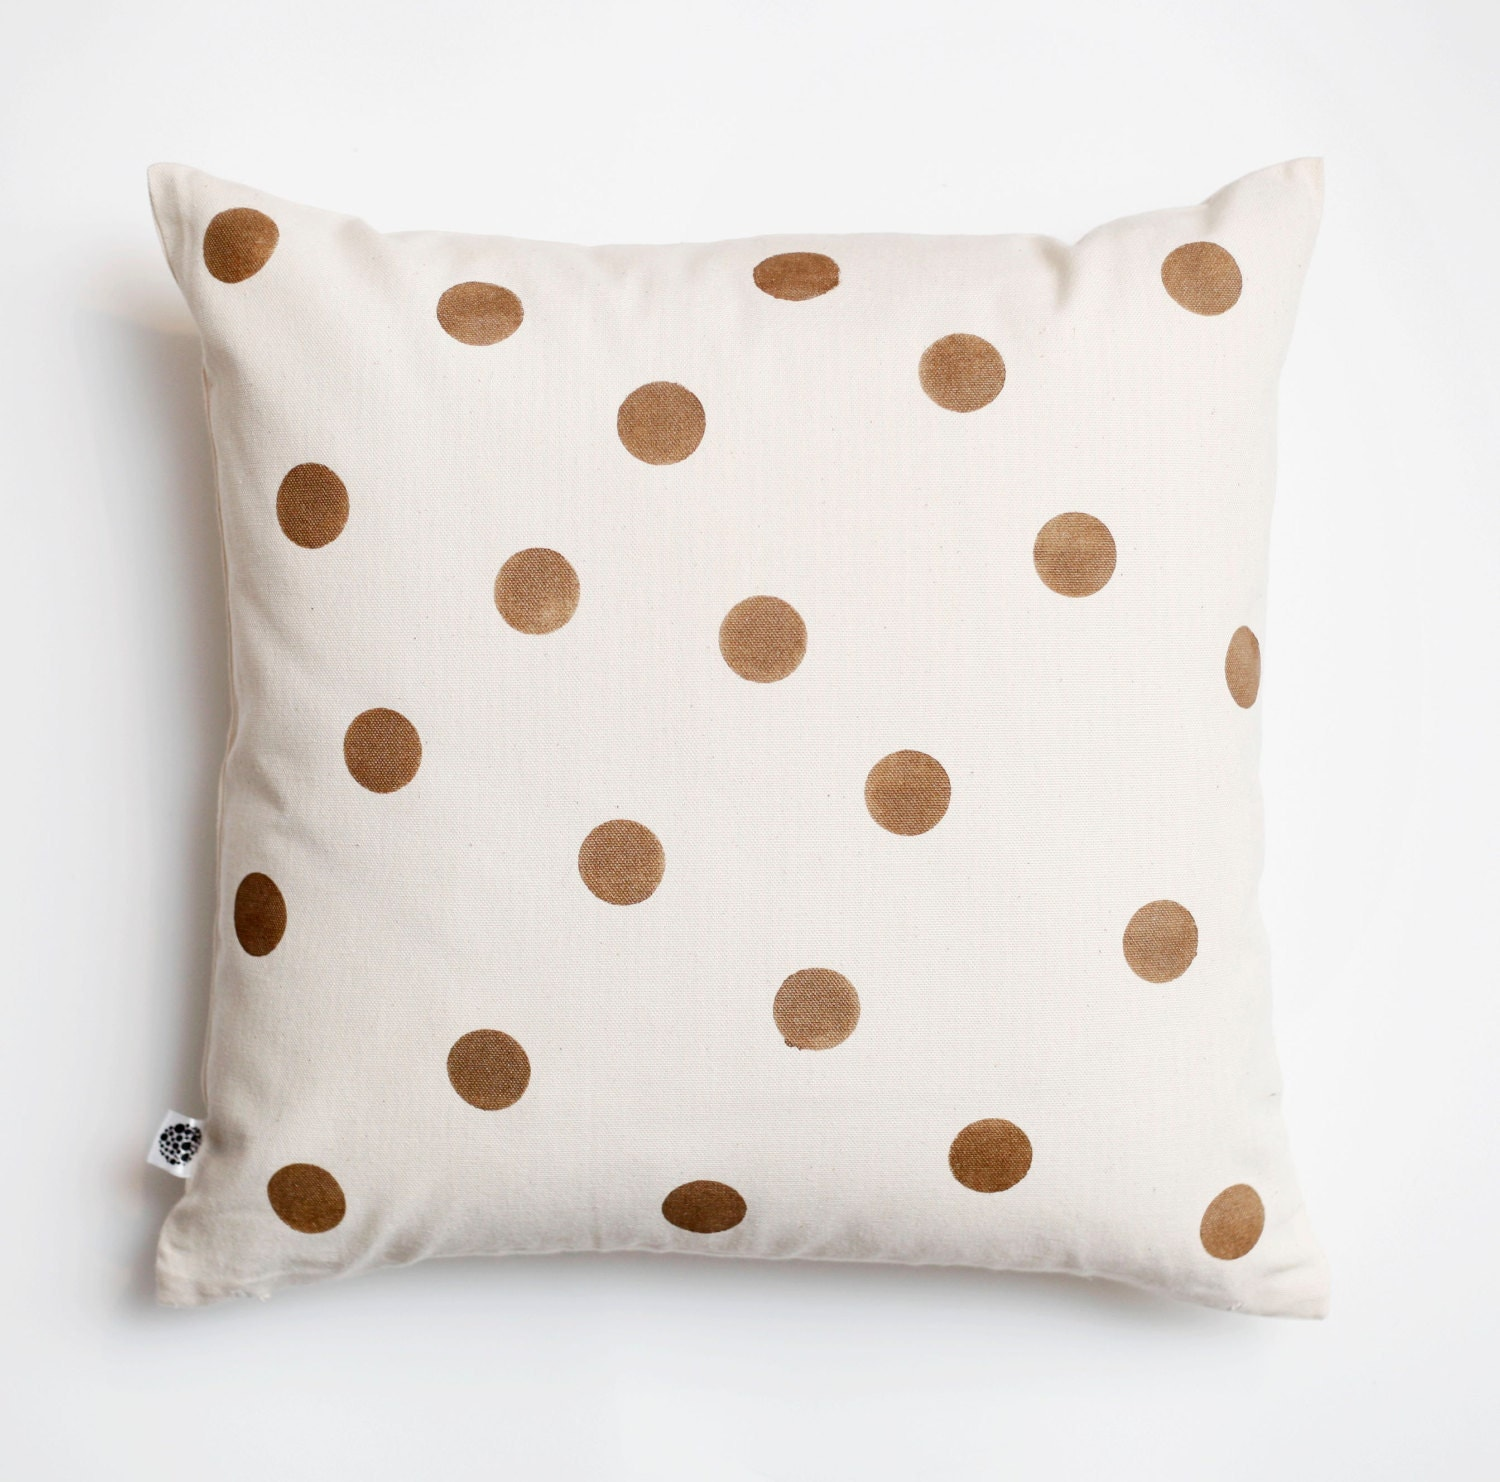 How To Make A Decorative Pillow By Hand : Decorative pillow cover golden polka dots hand by pillowlink